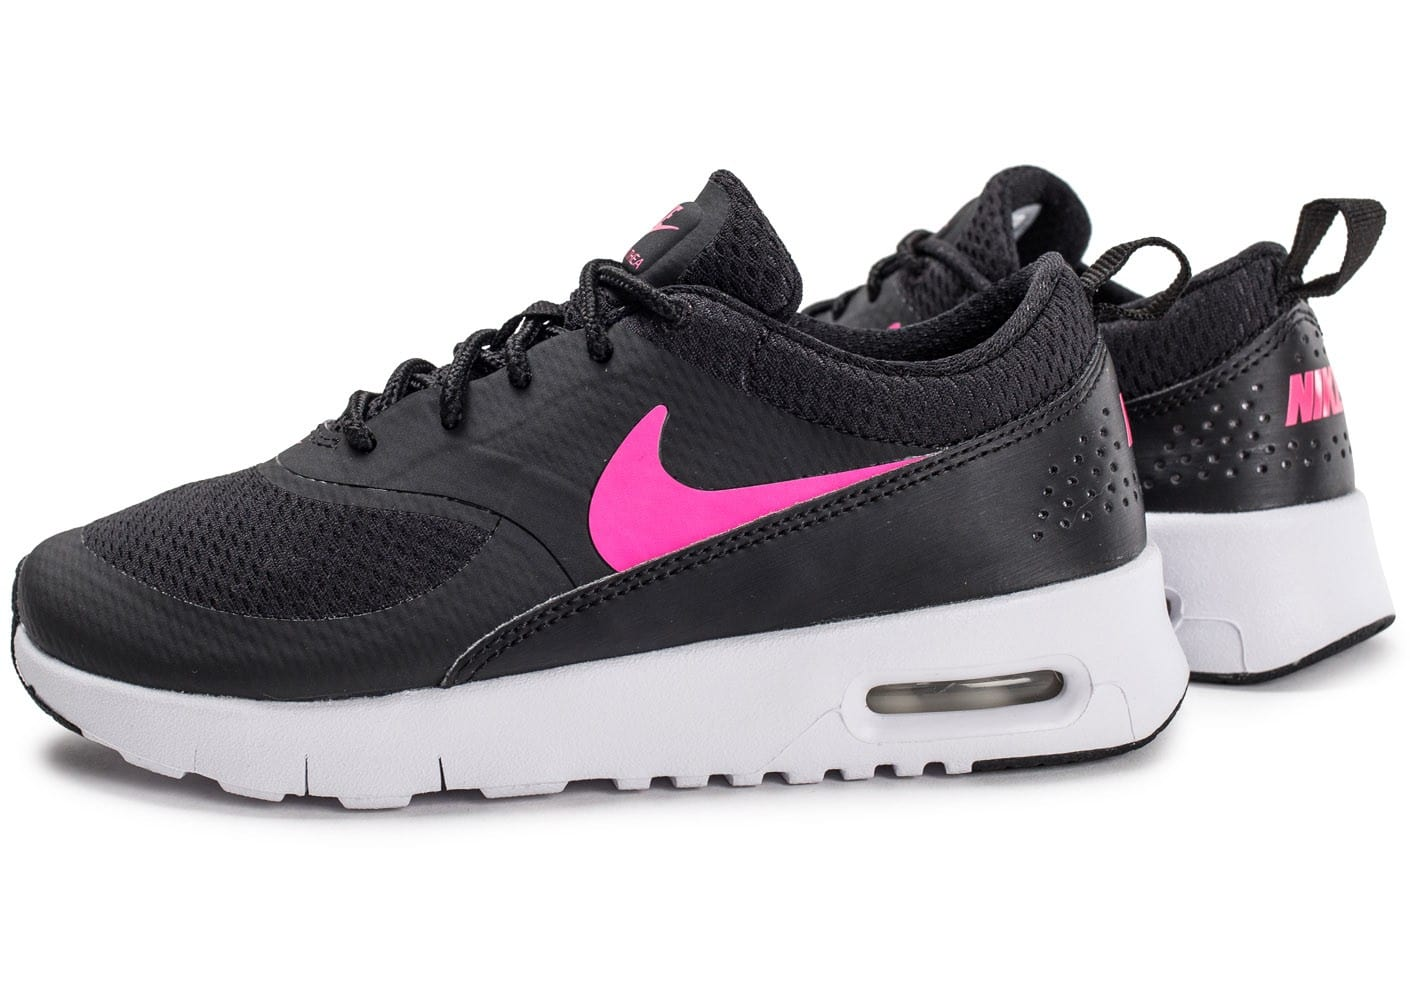 nike air max thea enfant noire et rose chaussures chaussures chausport. Black Bedroom Furniture Sets. Home Design Ideas